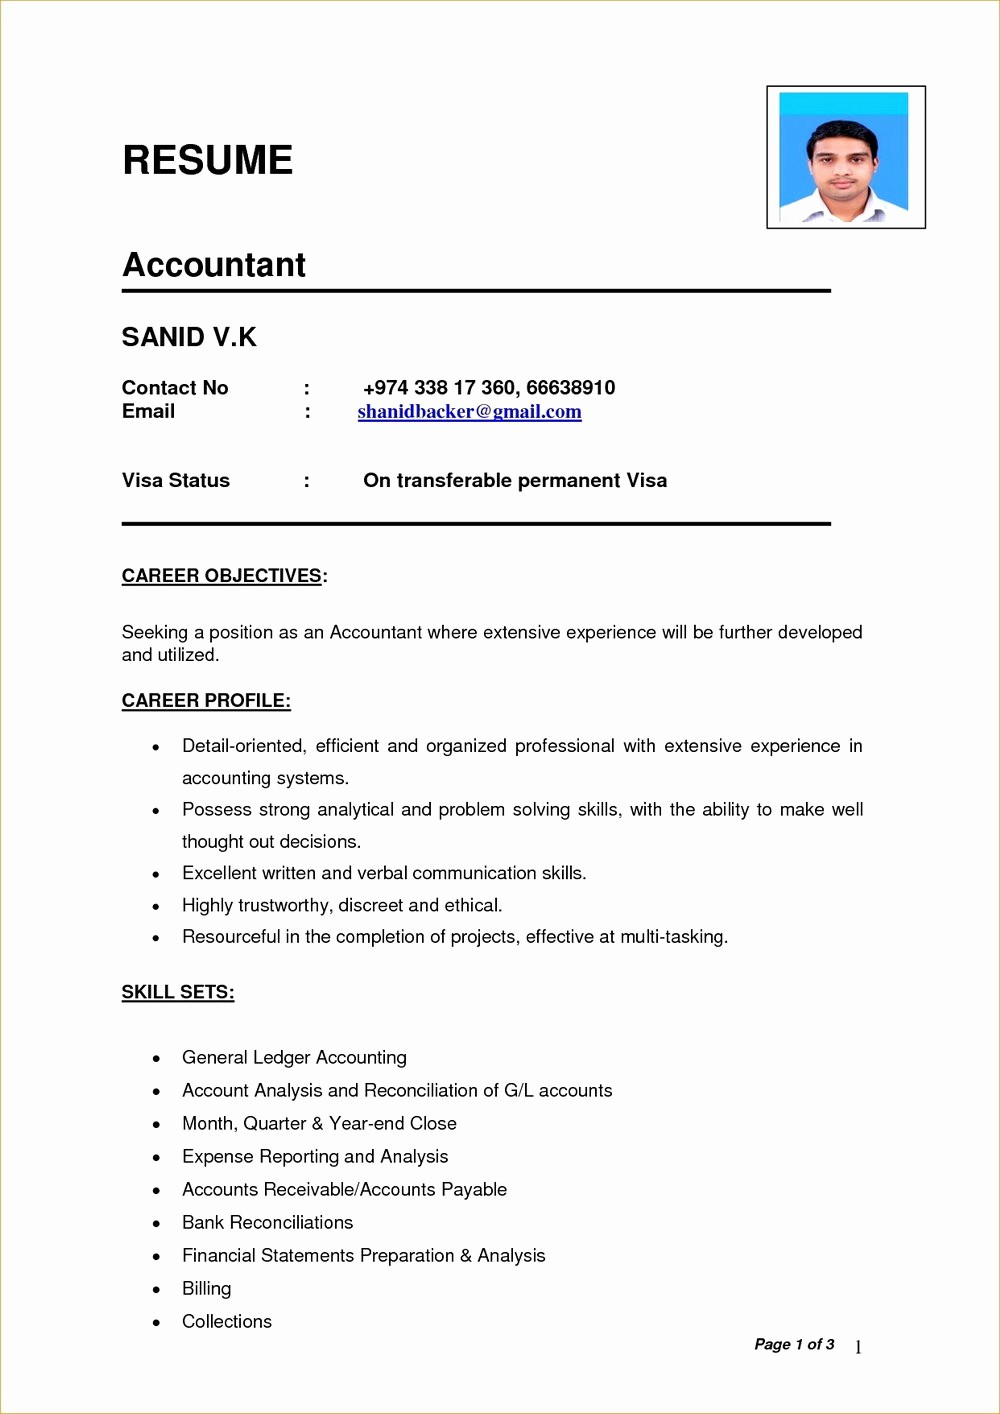 Resume format In Microsoft Word Elegant Simple Resume Templates for Word Resumes 201